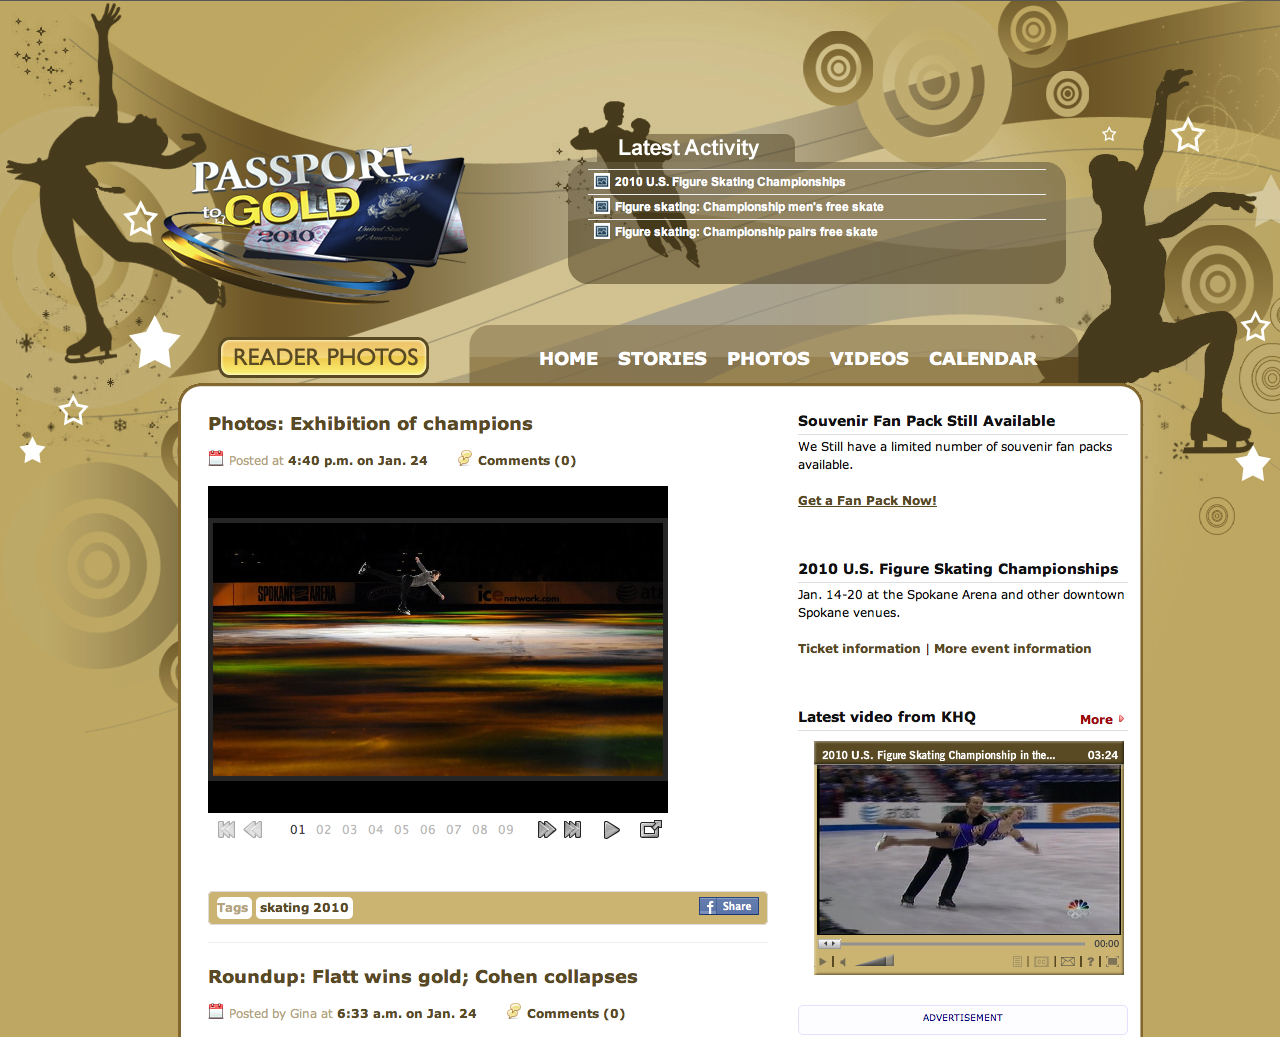 Passport to Gold 2010 web site